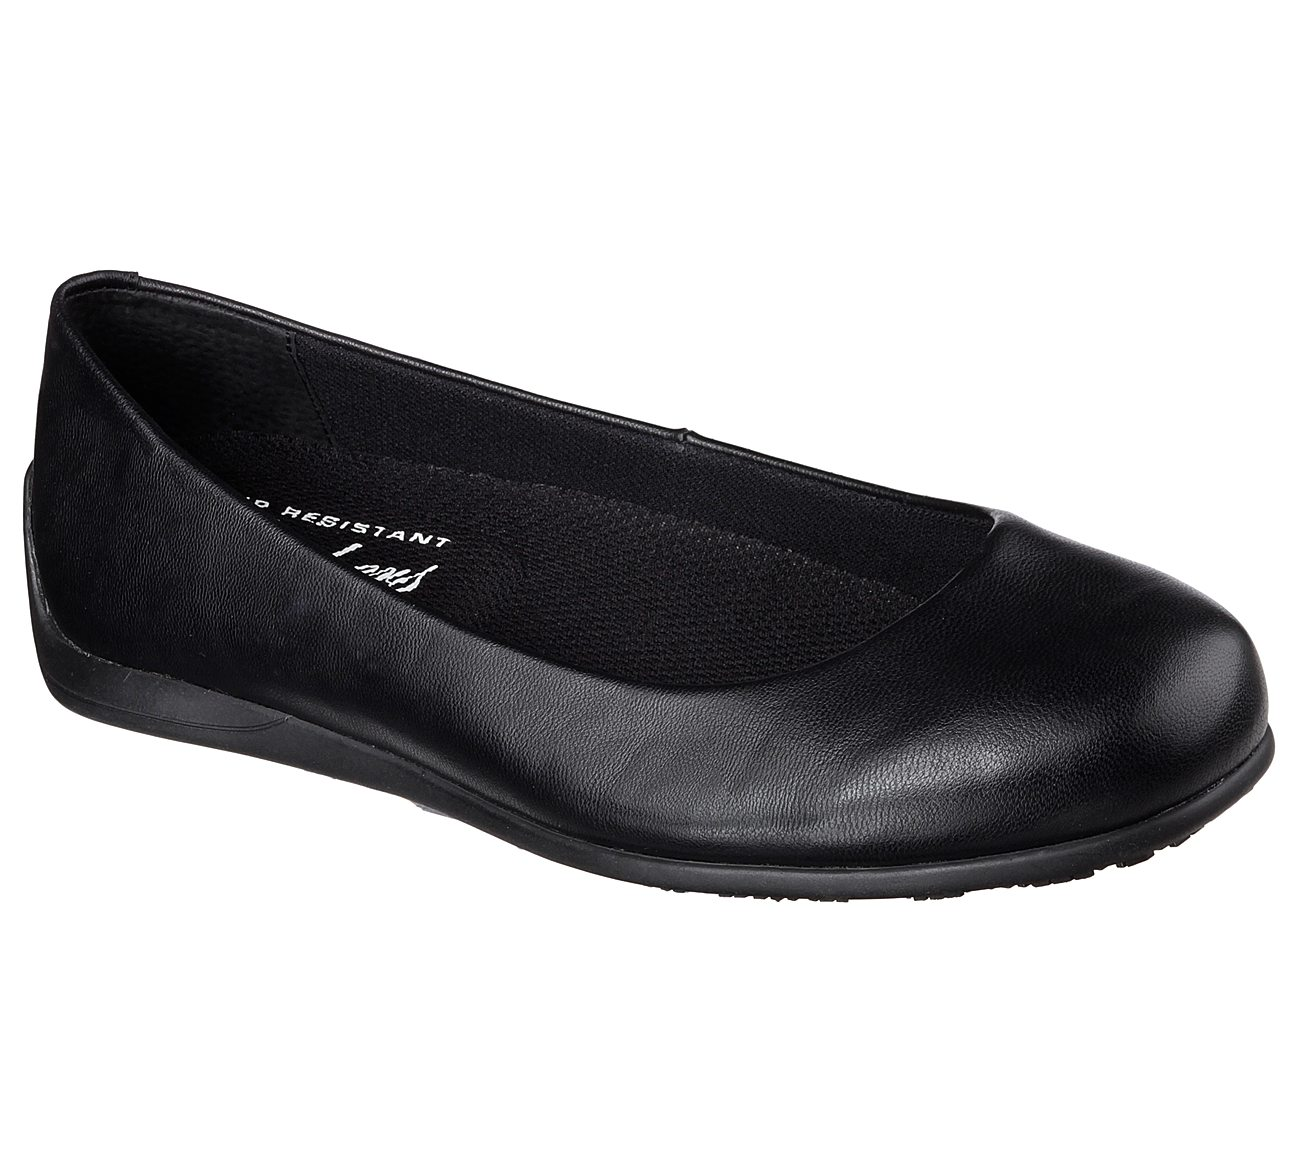 2017 New Skechers Work Flattery Transpire Memory Foam Slip On Flat Black